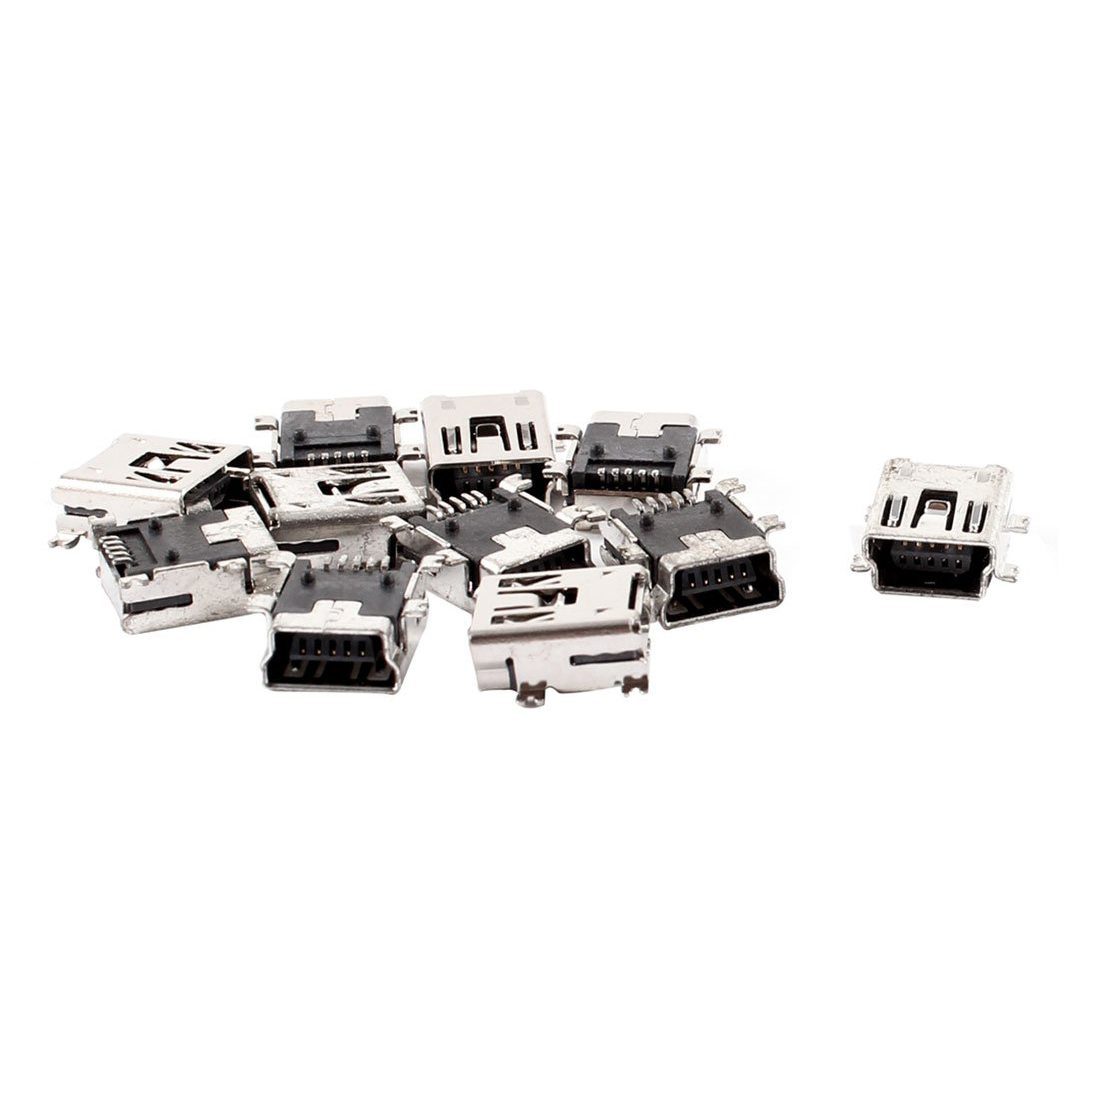 Replacement <font><b>Mini</b></font> <font><b>USB</b></font> Type B Female 5 <font><b>Pin</b></font> PCB Board Mount Jack Charger <font><b>Connector</b></font> <font><b>10</b></font> Pcs image